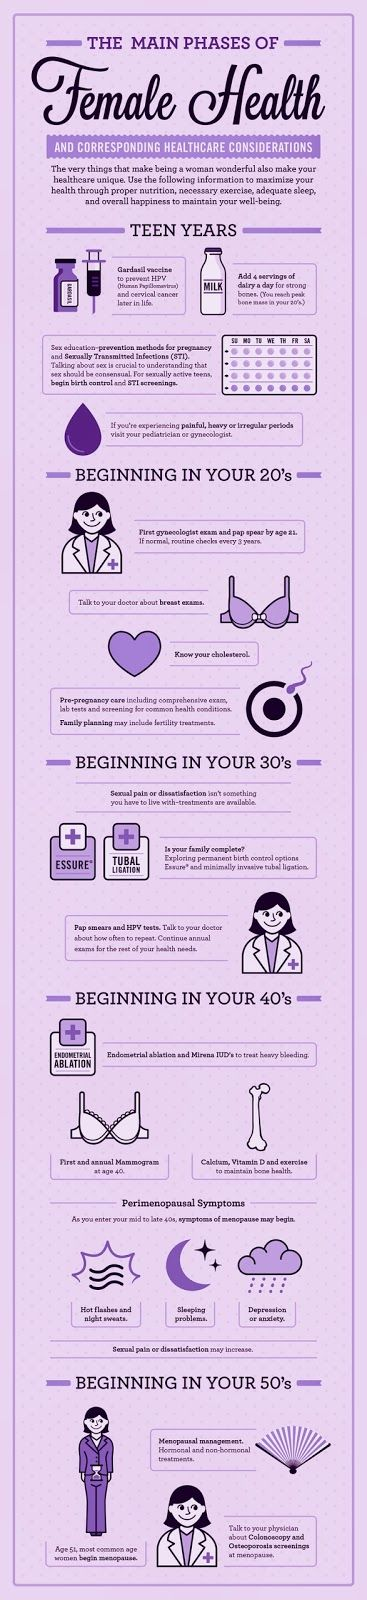 It is so important as women - at every age - to maximize our health, nutrition and overall well-being. This graphic provides some great healthcare considerations to help guide you along the way.. #HelpingWomenNow